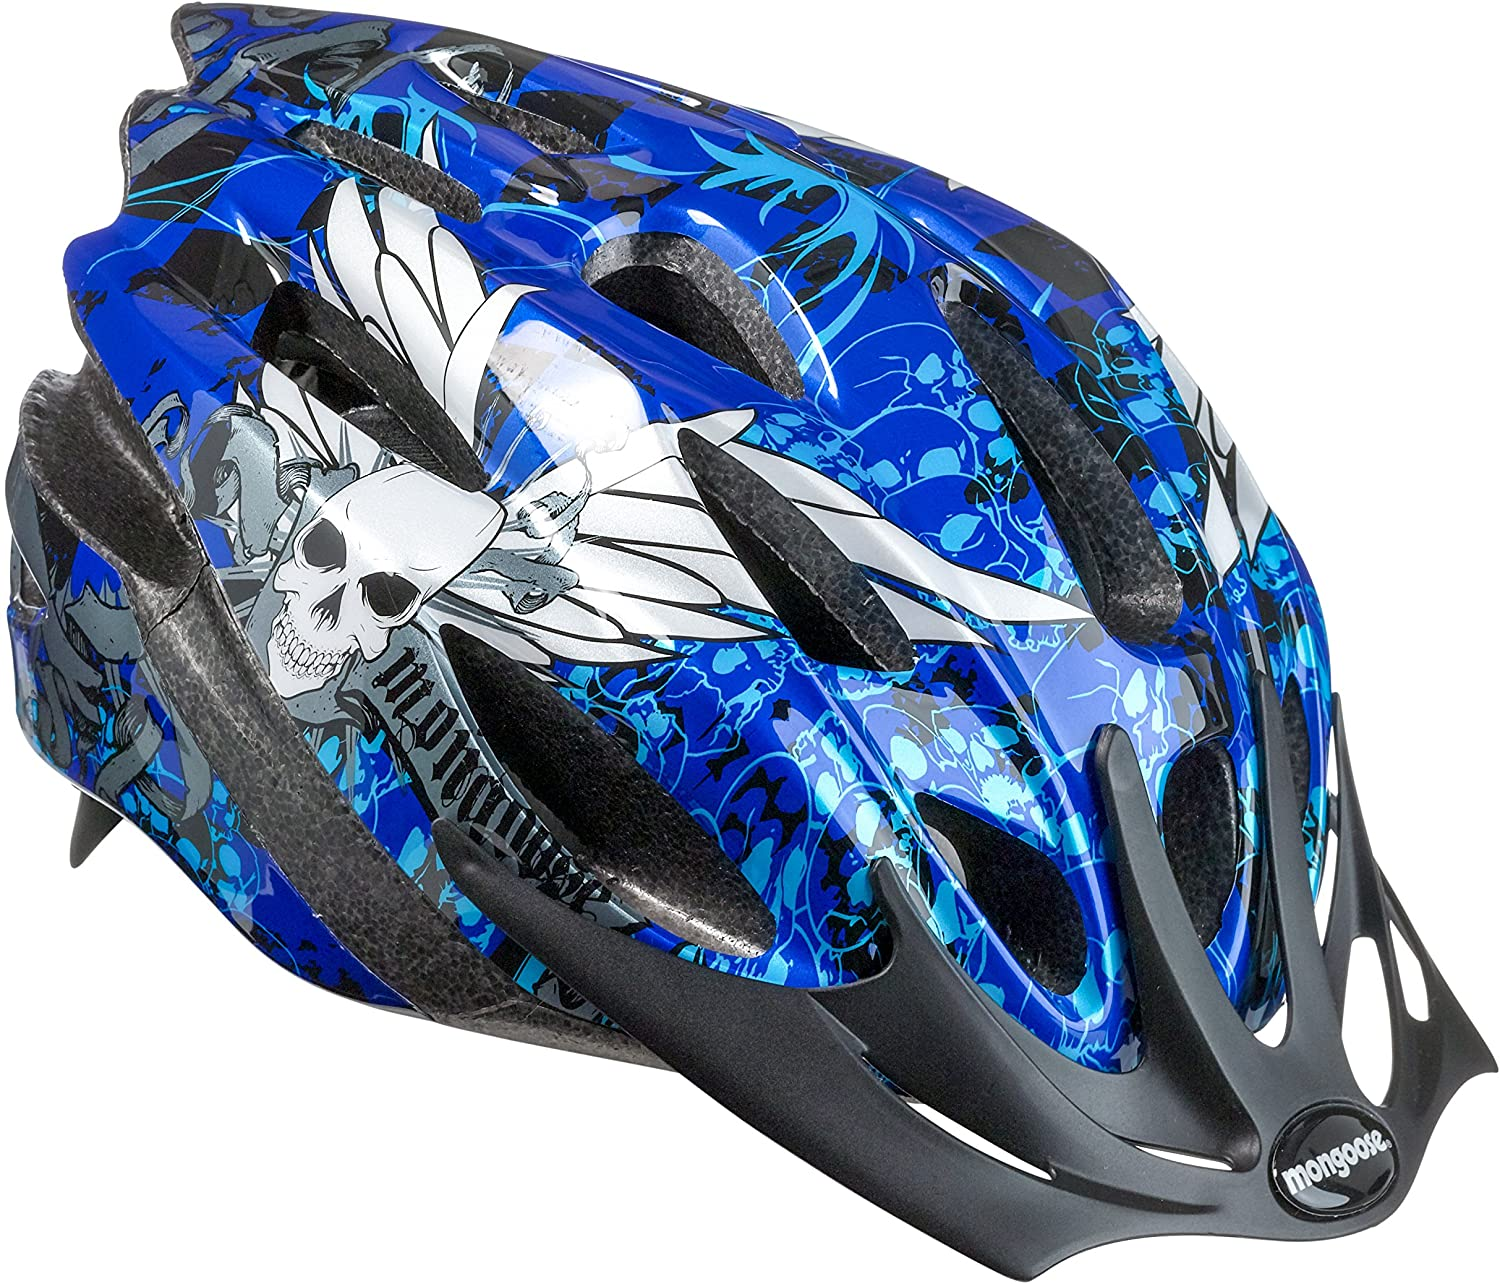 Mongoose Thrasher Youth Bike Helmet, Lightweight Microshell Design